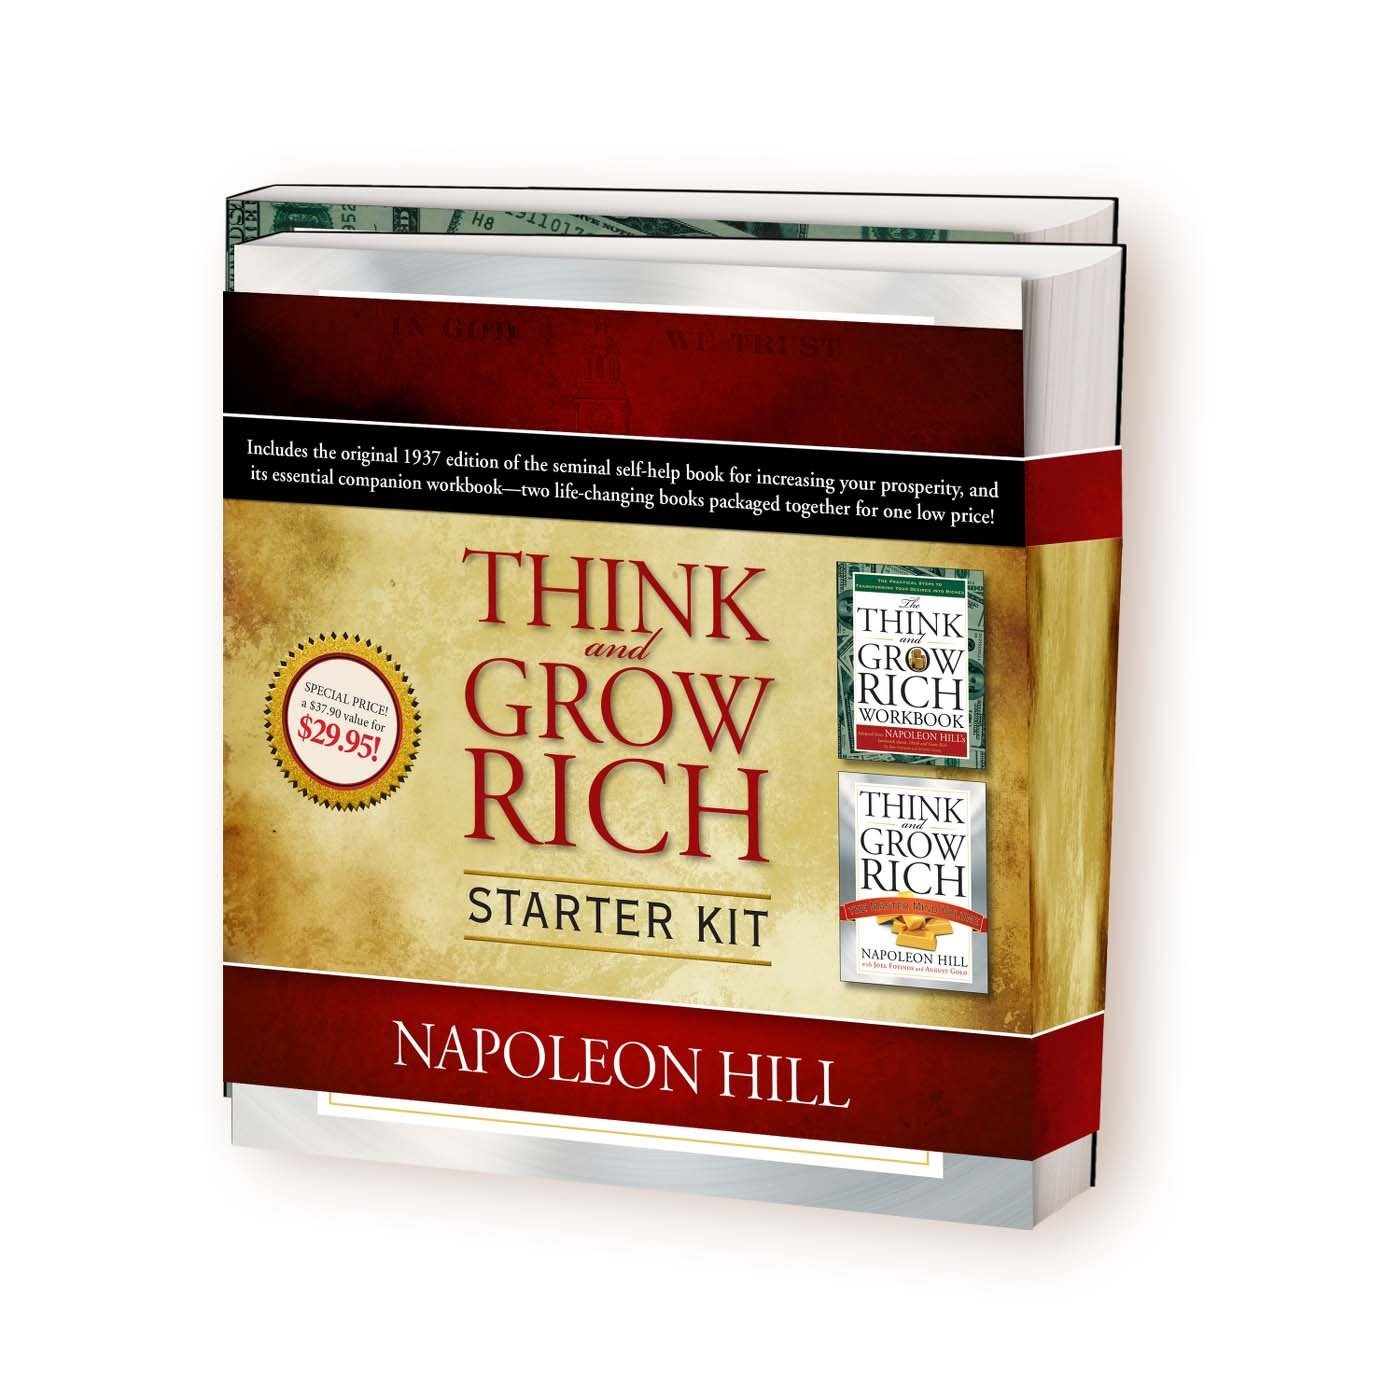 Think Grow Rich Starter Kit product image